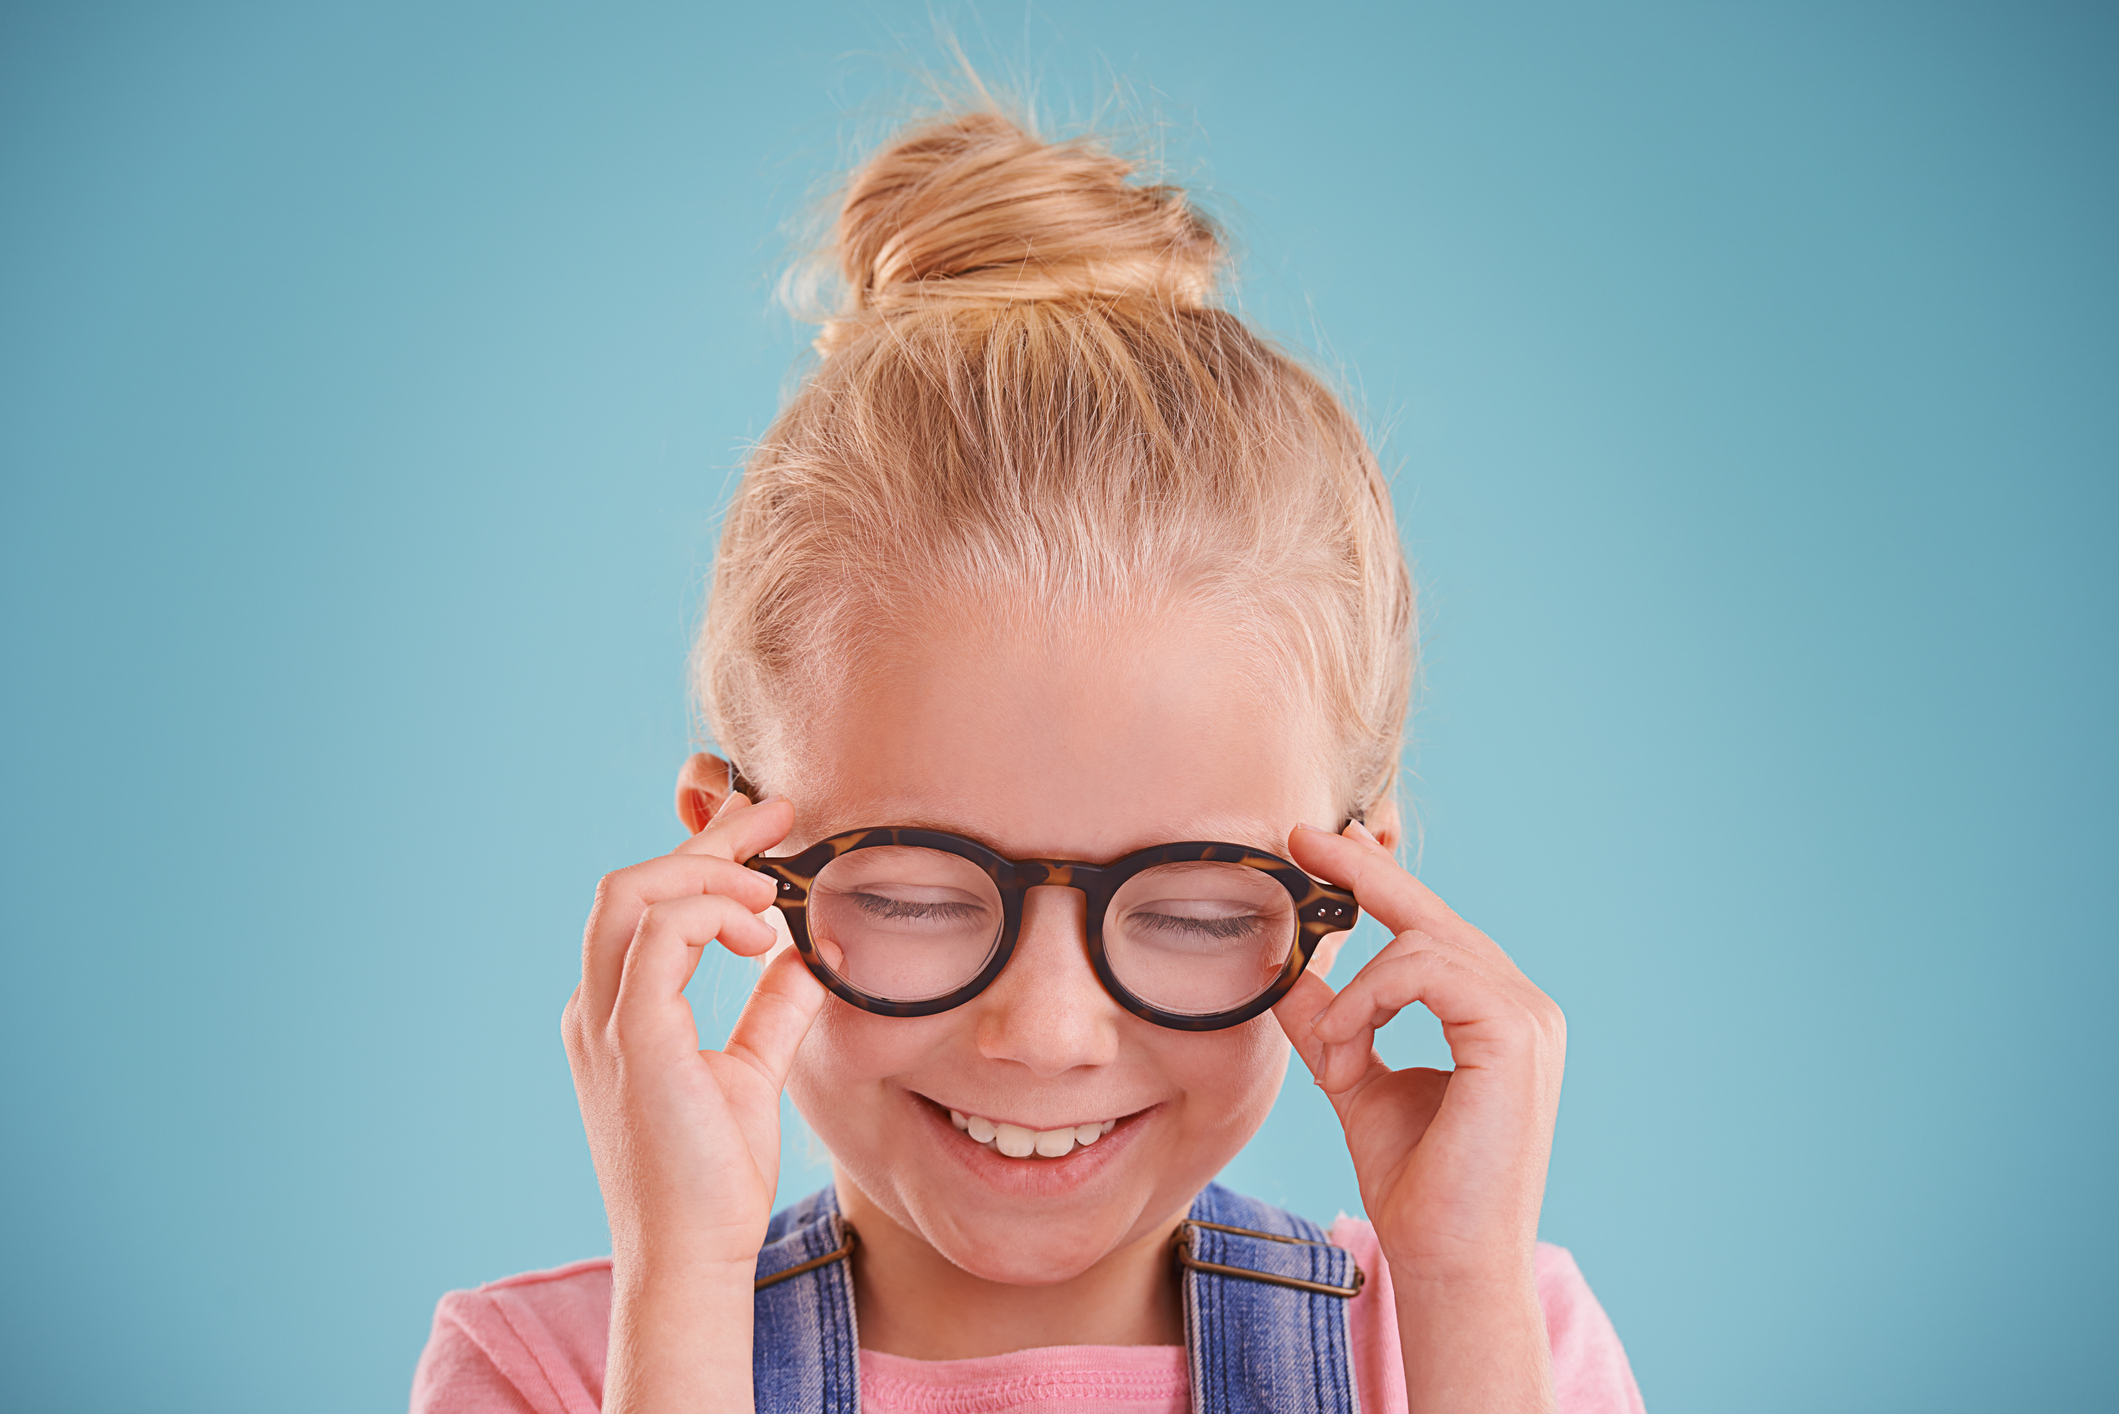 Studio shot of a little girl wearing hipster glasses on a blue background